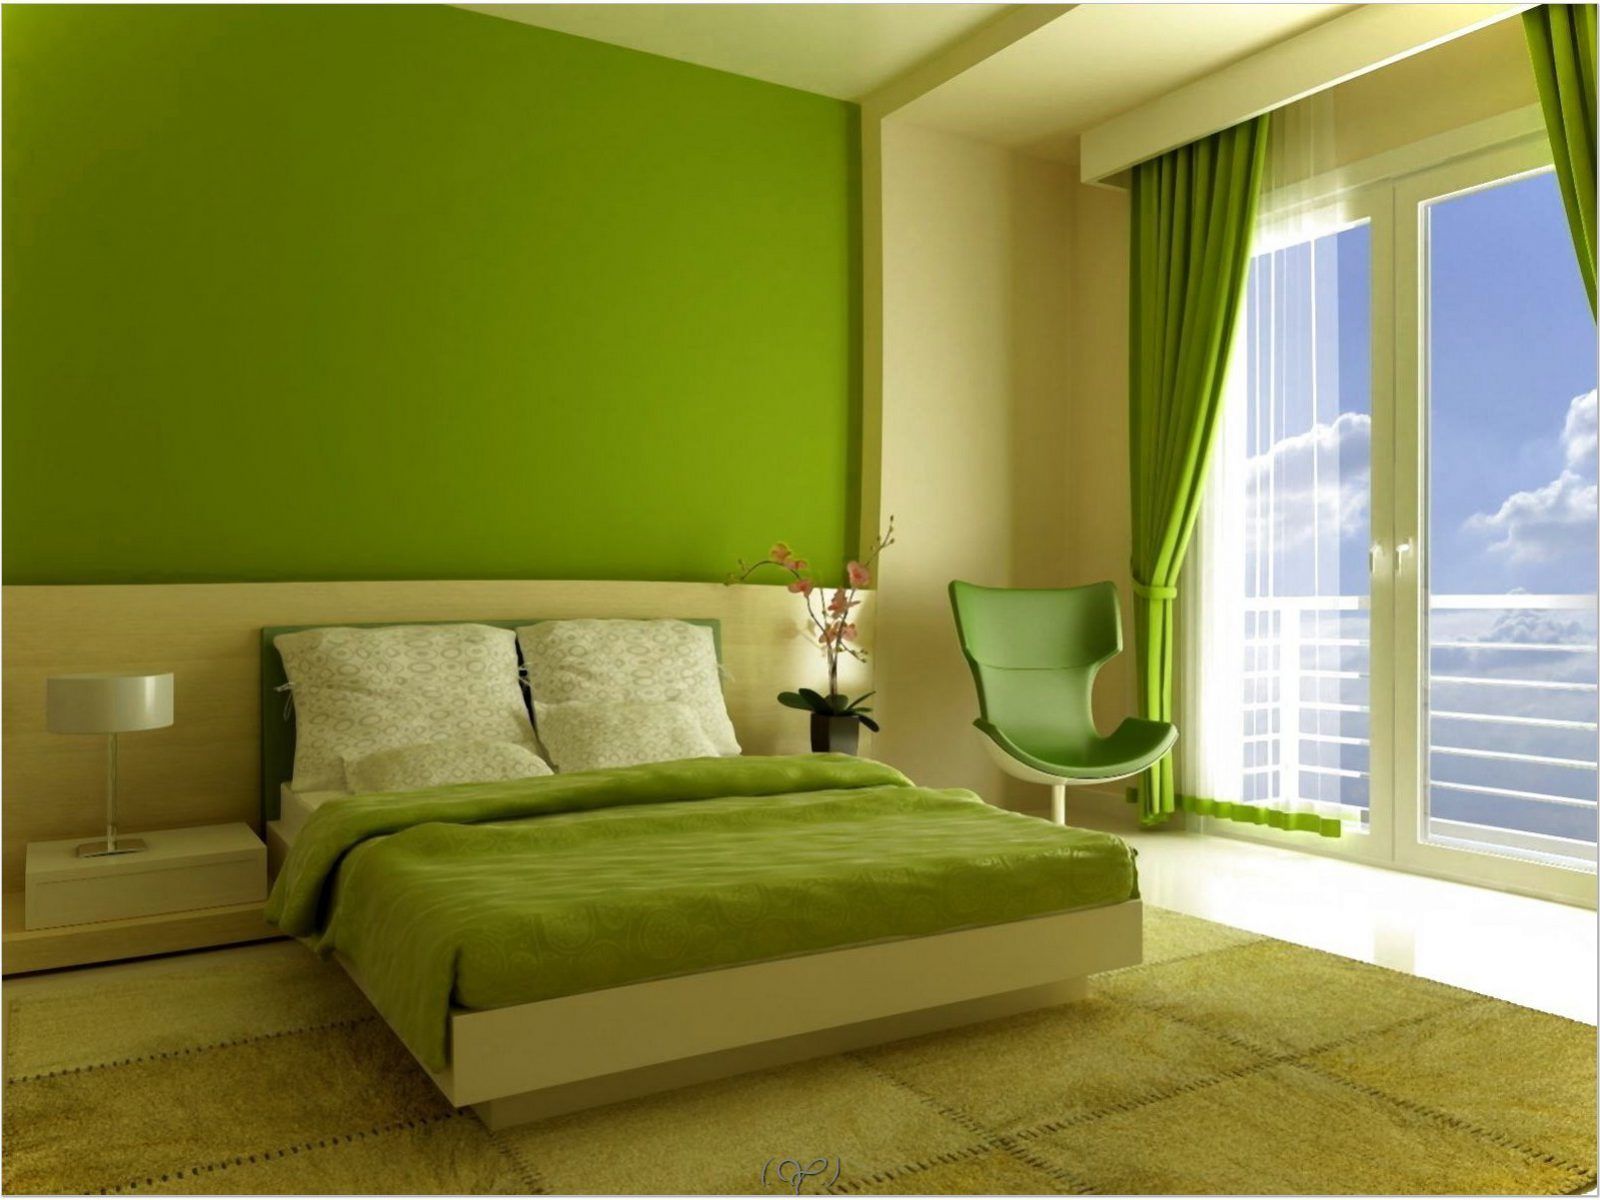 Image Result For Modern Exterior Painting Ideas India Green And White Bedroom Bedroom Wall Colors Green Room Colors